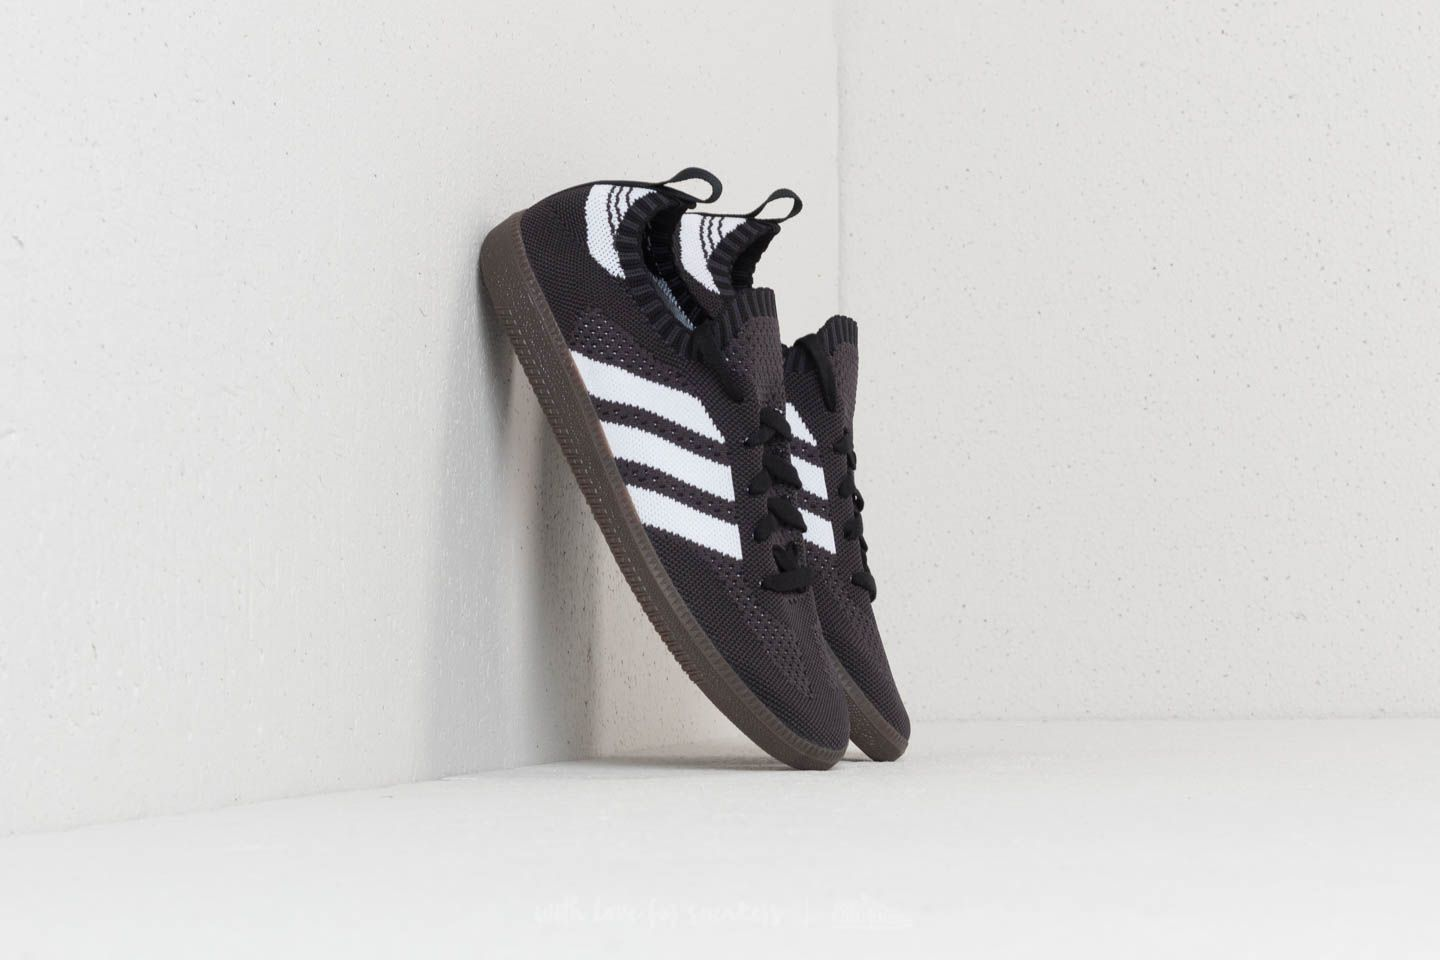 79004ad00332 adidas Samba Primeknit Sock Core Black  Ftw White  Core Red ...